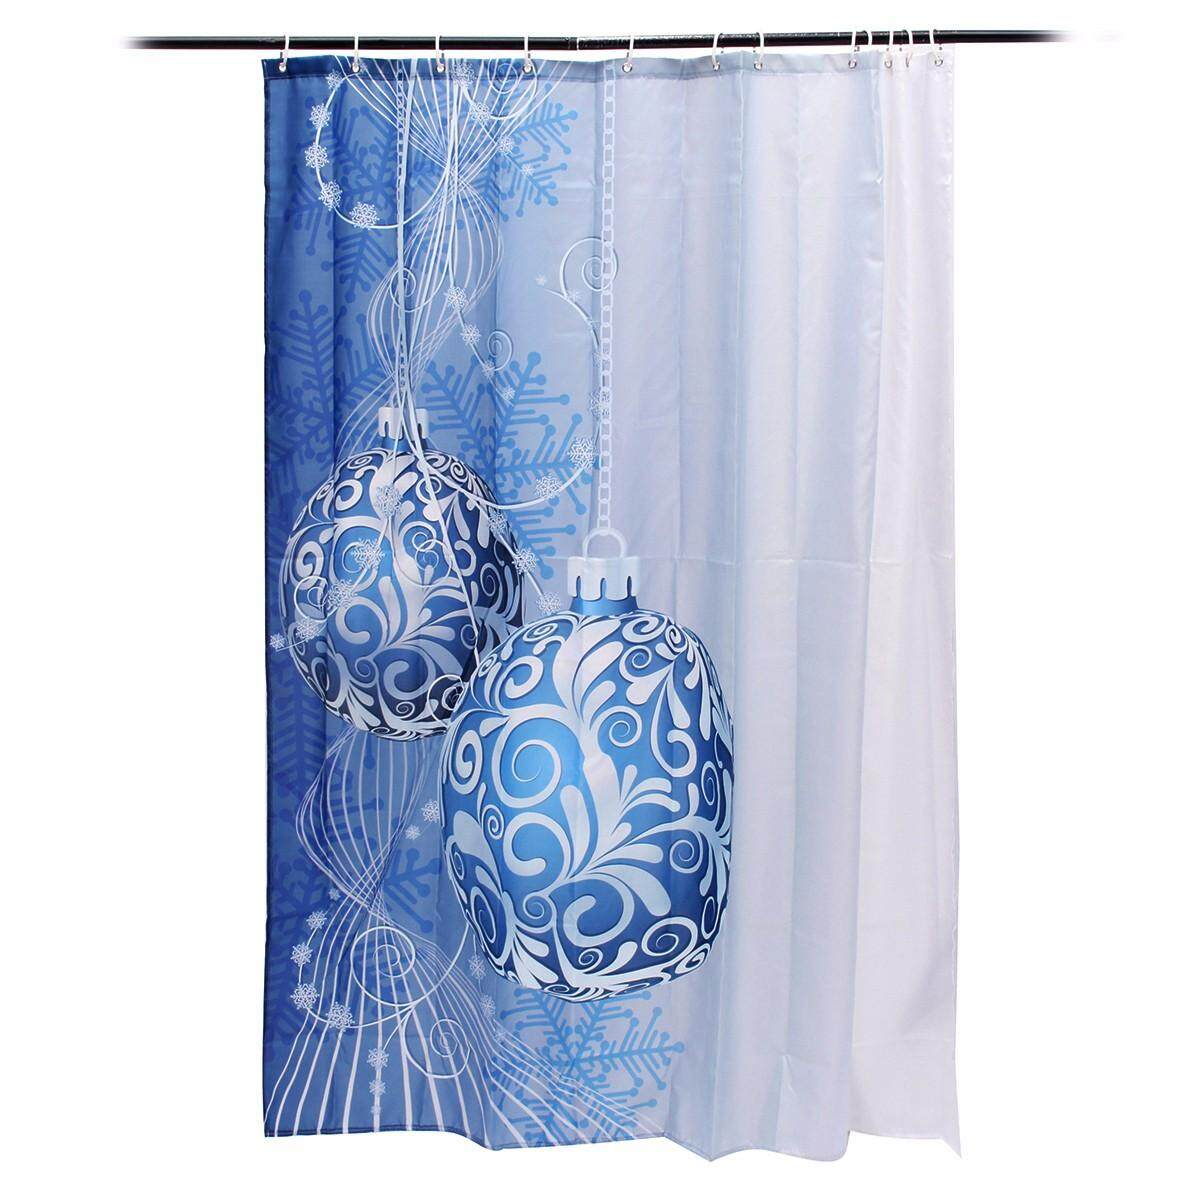 180x180cm Christmas Xmas Blue Hanging Ball Ornament Bathroom Shower Curtains With Hooks Ring By Glimmer.